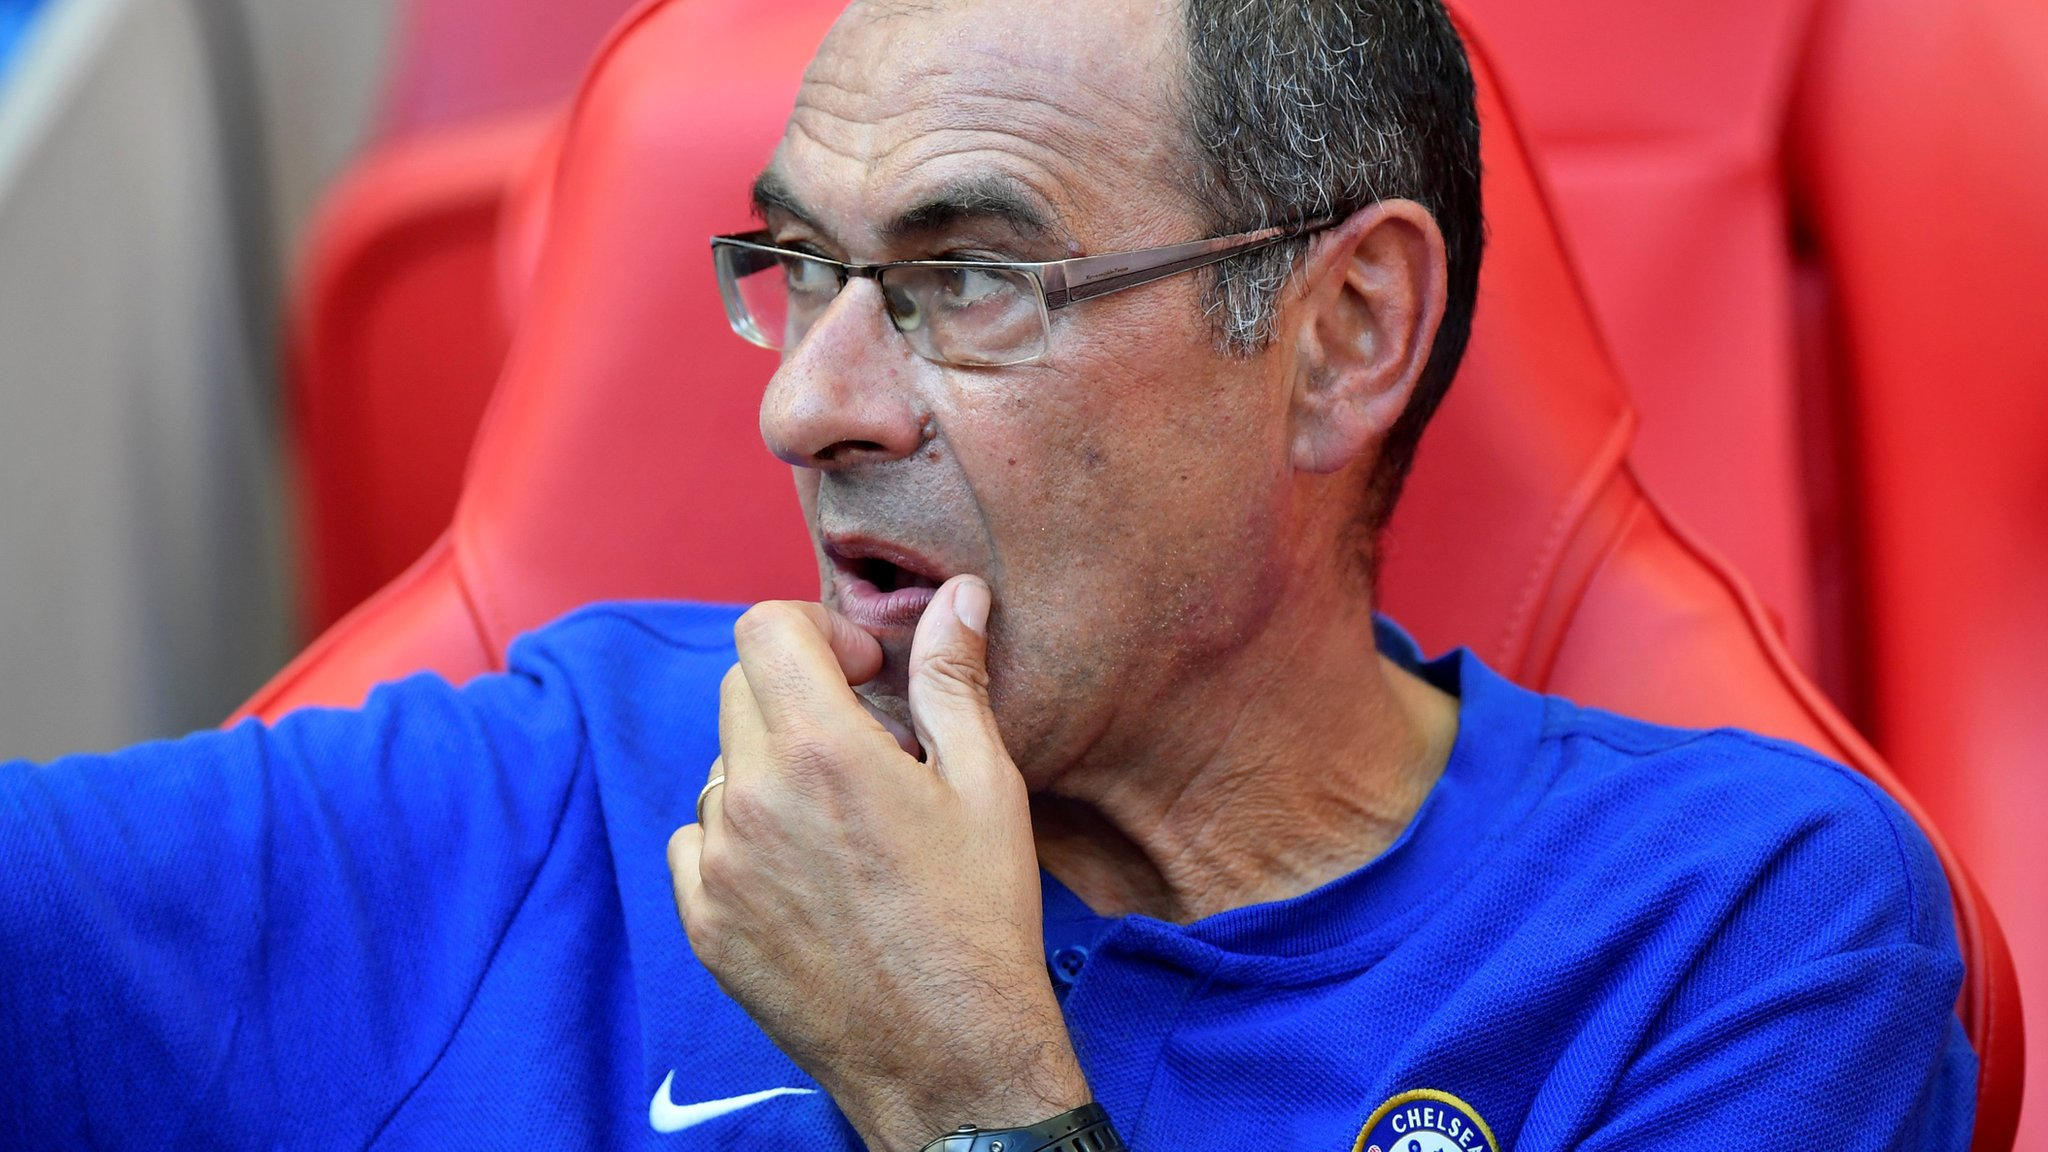 'We're a step behind Liverpool' - Chelsea boss Sarri before sides meet twice this week